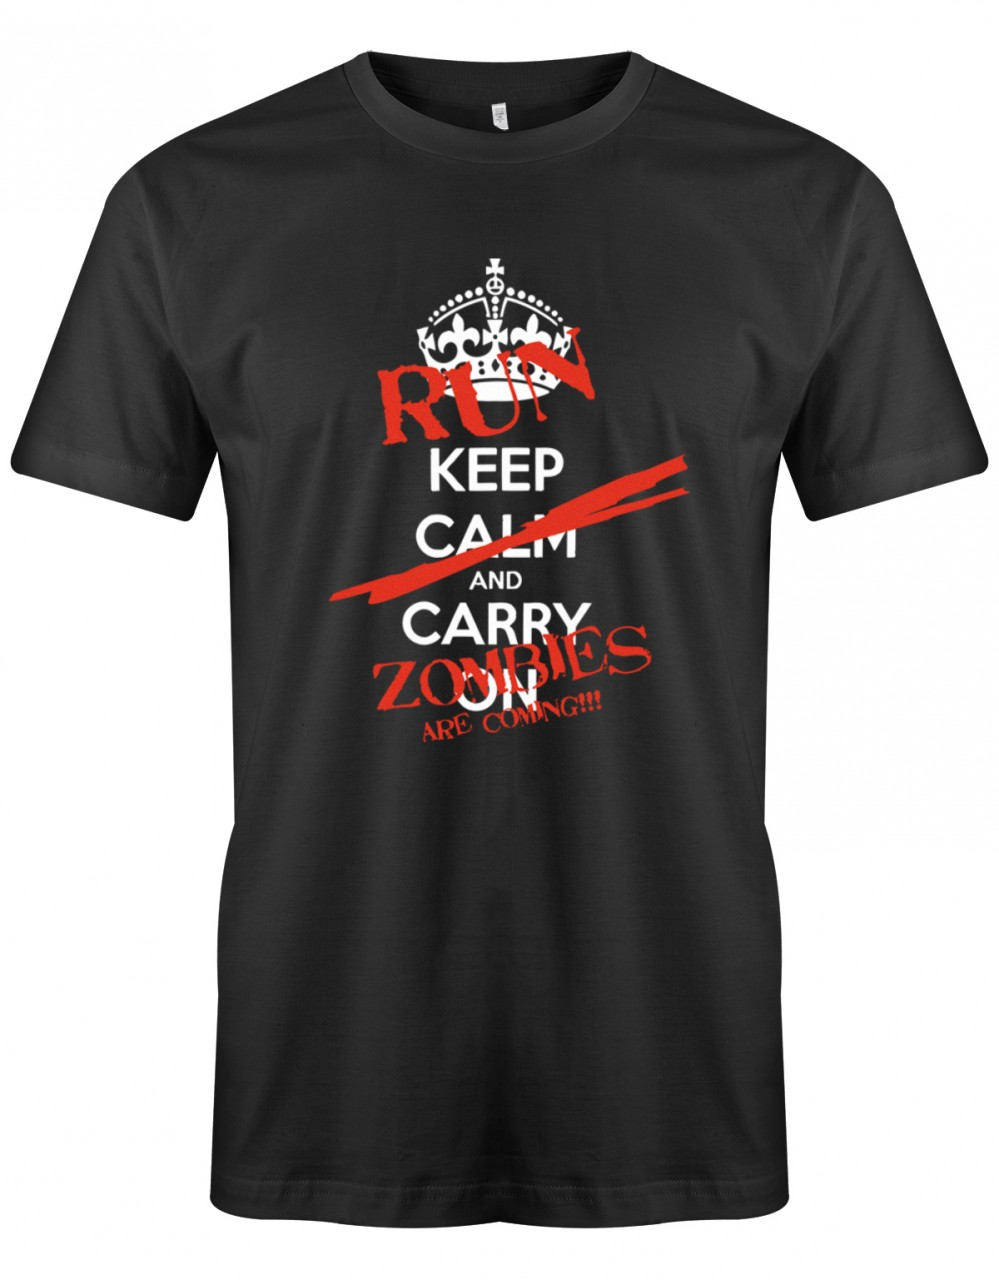 Keep Calm and Carry on Run zombies are coming - Halloween - Herren T-Shirt